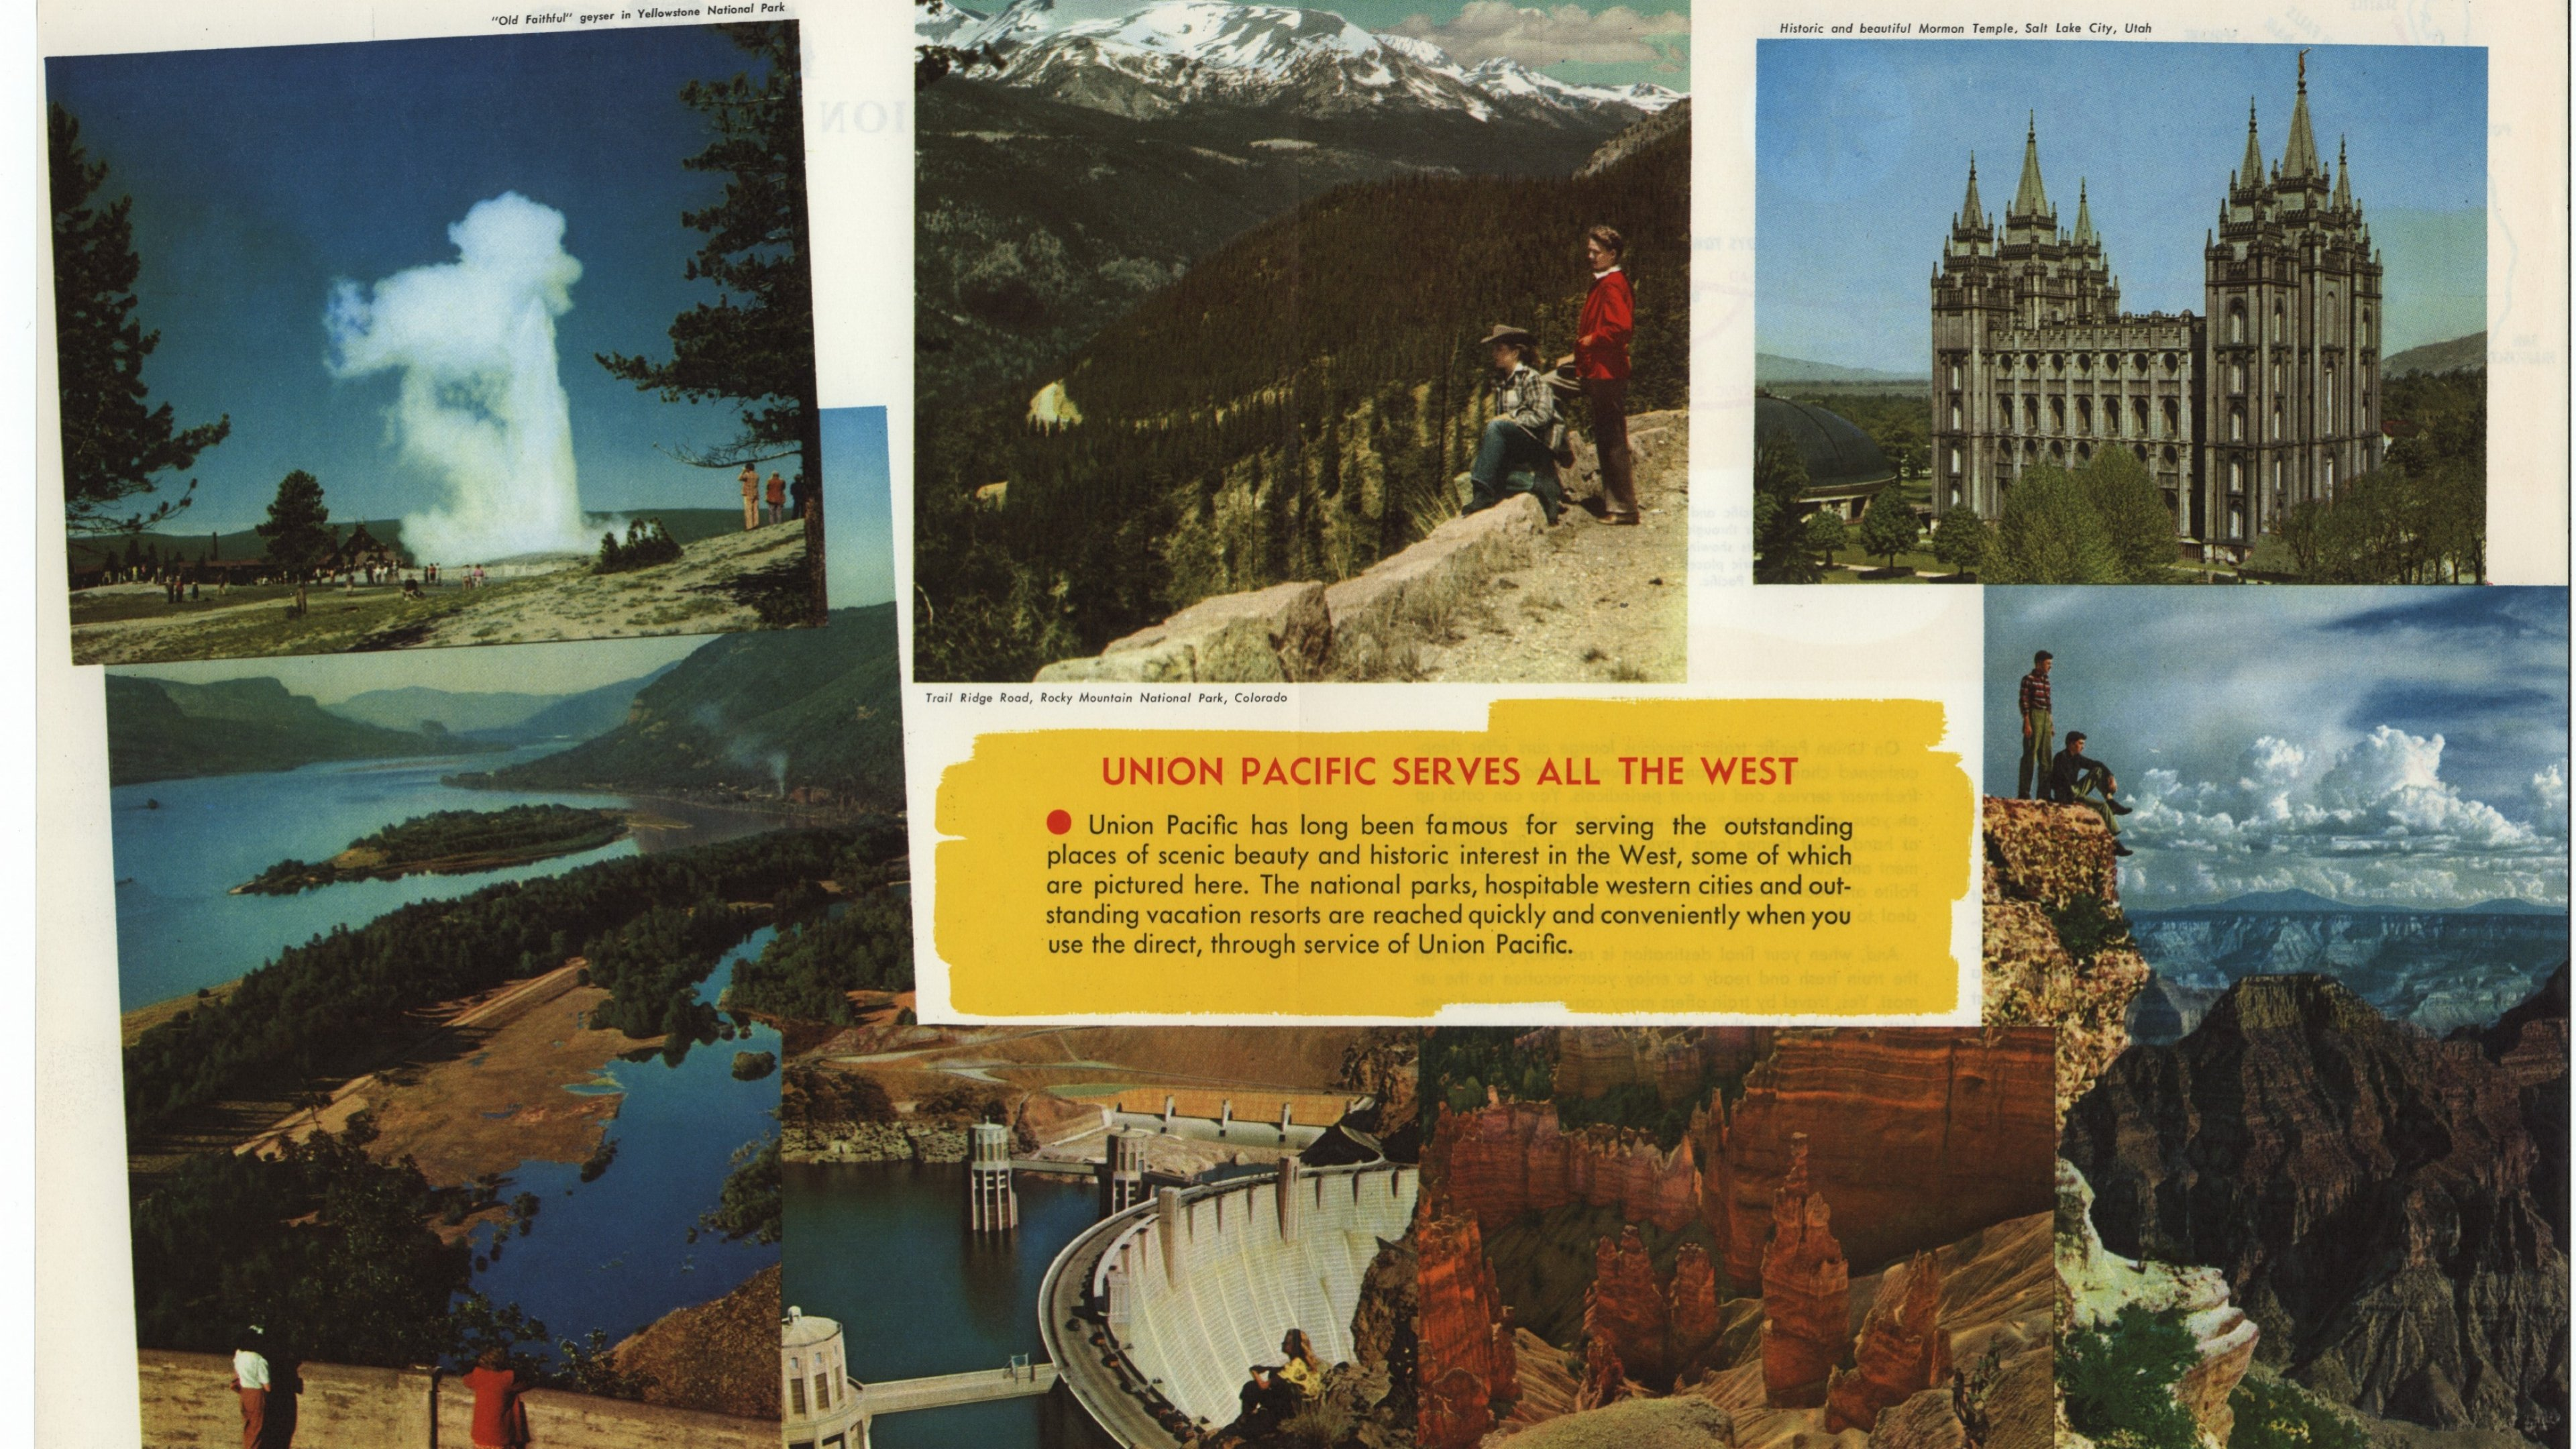 Union Pacific ad with collage of images from different western national parks